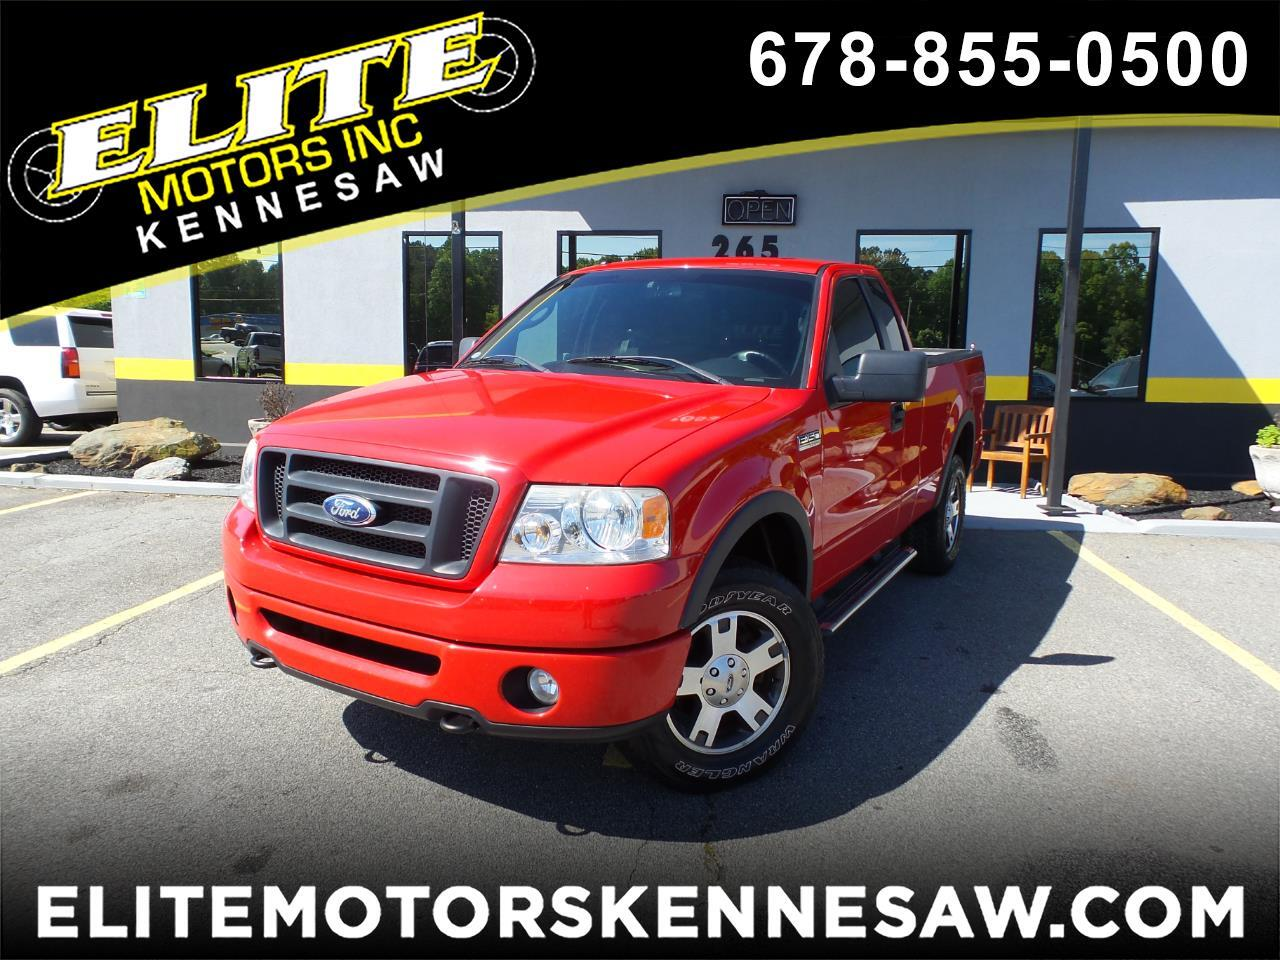 2008 Ford F-150 XLT 4WD FX4